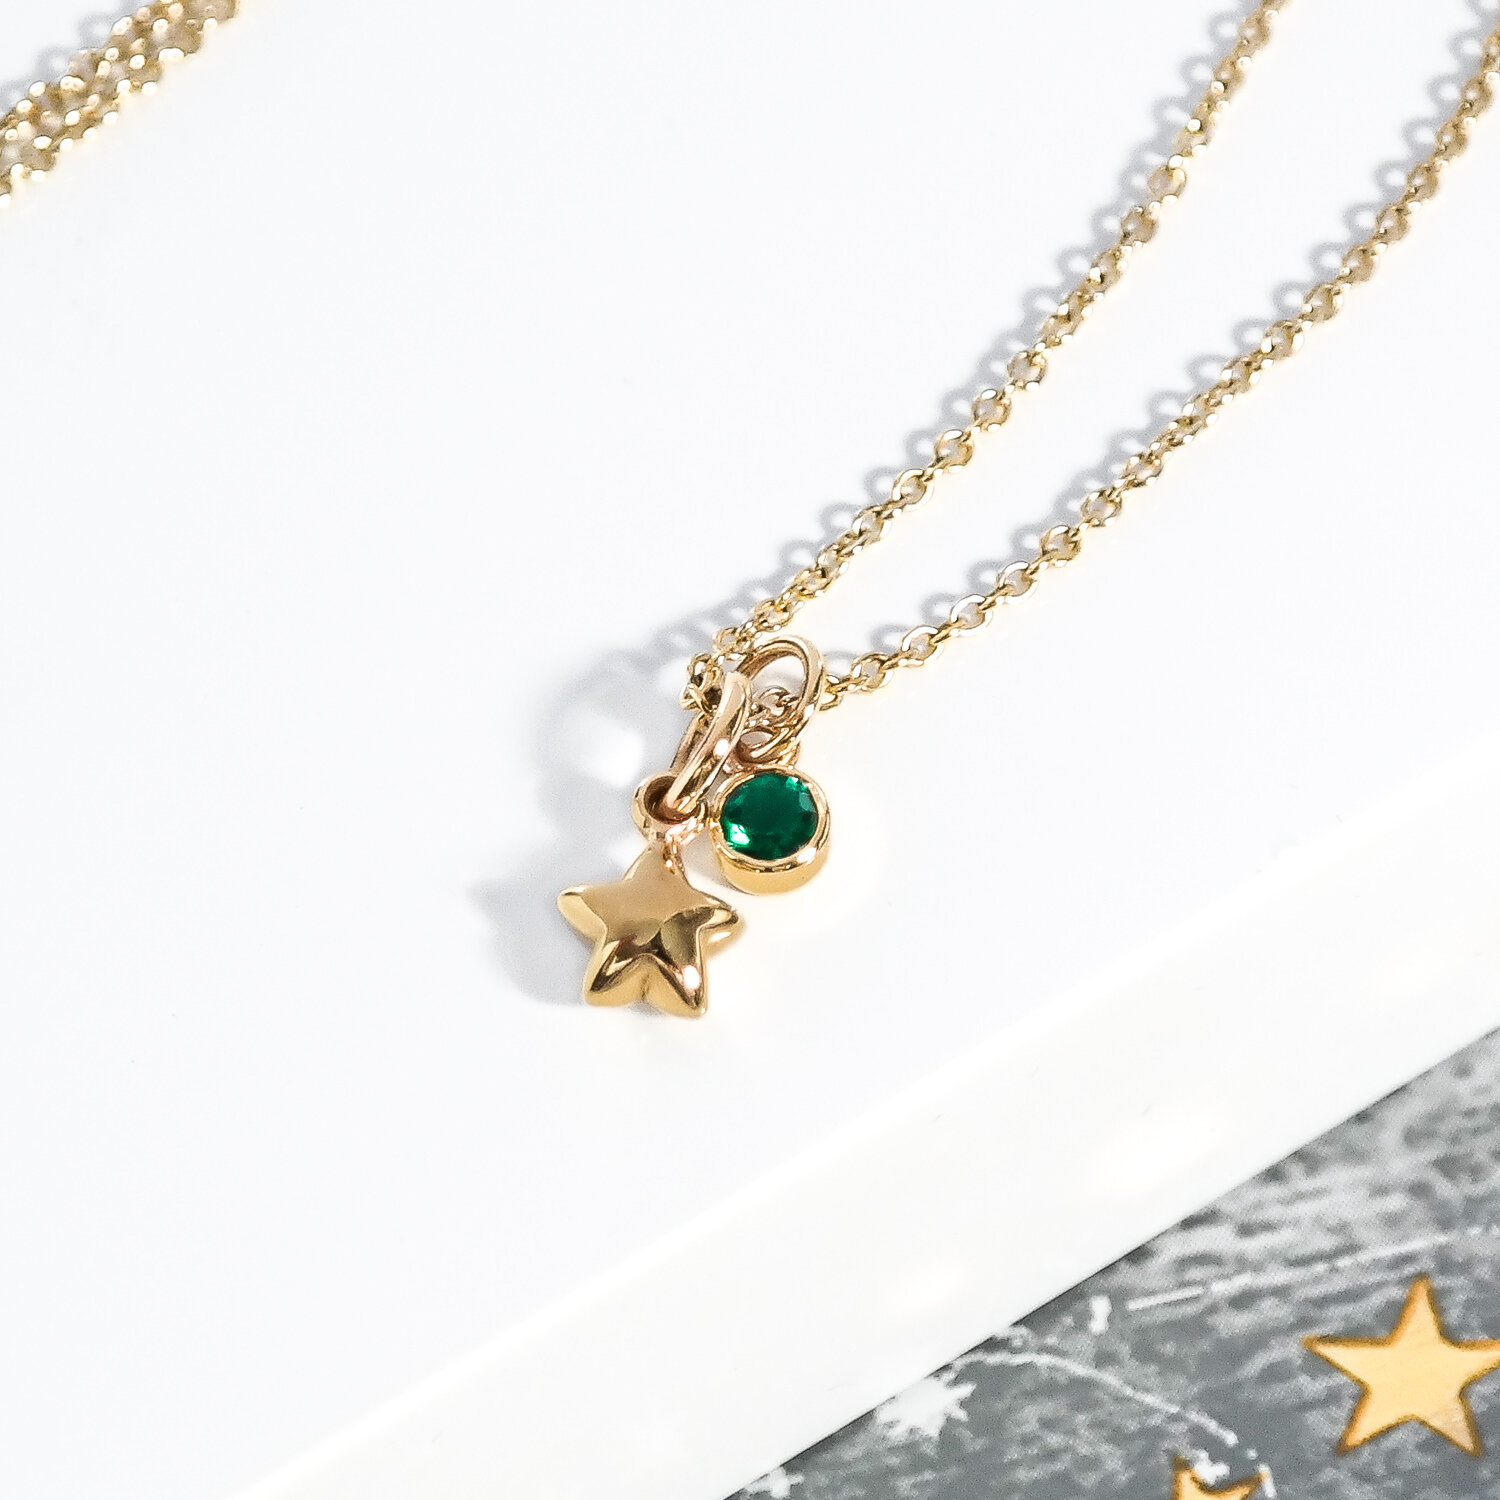 Solid-eco-recycled-gold-tiny-star-emerald-necklace-ethical.jpg